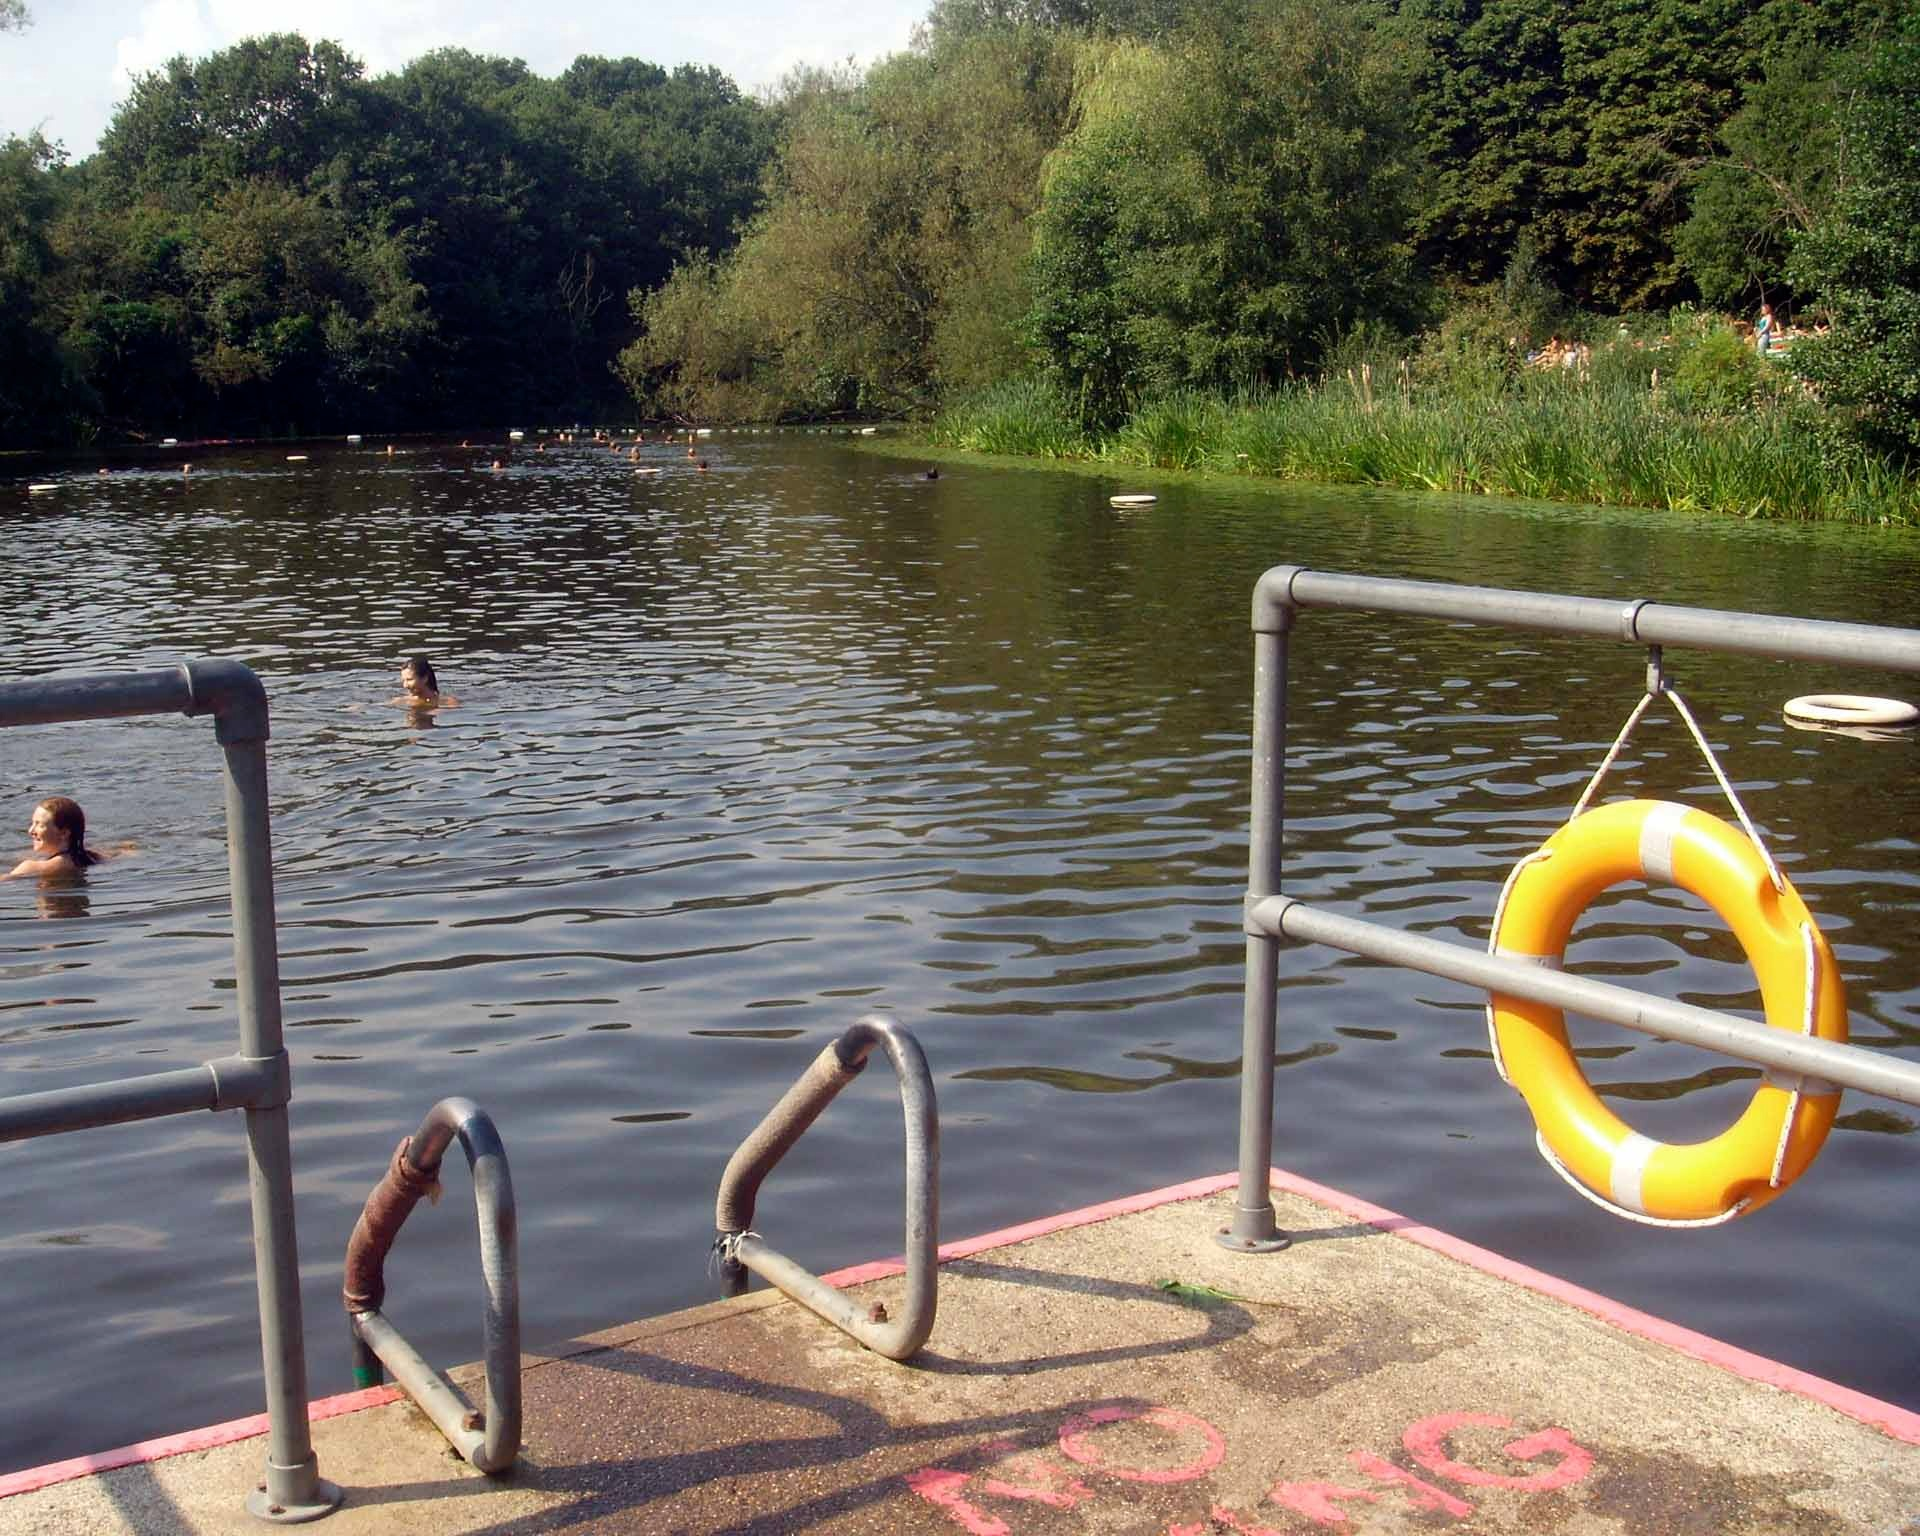 The docks at Hampstead Heath's Swimming Ponds